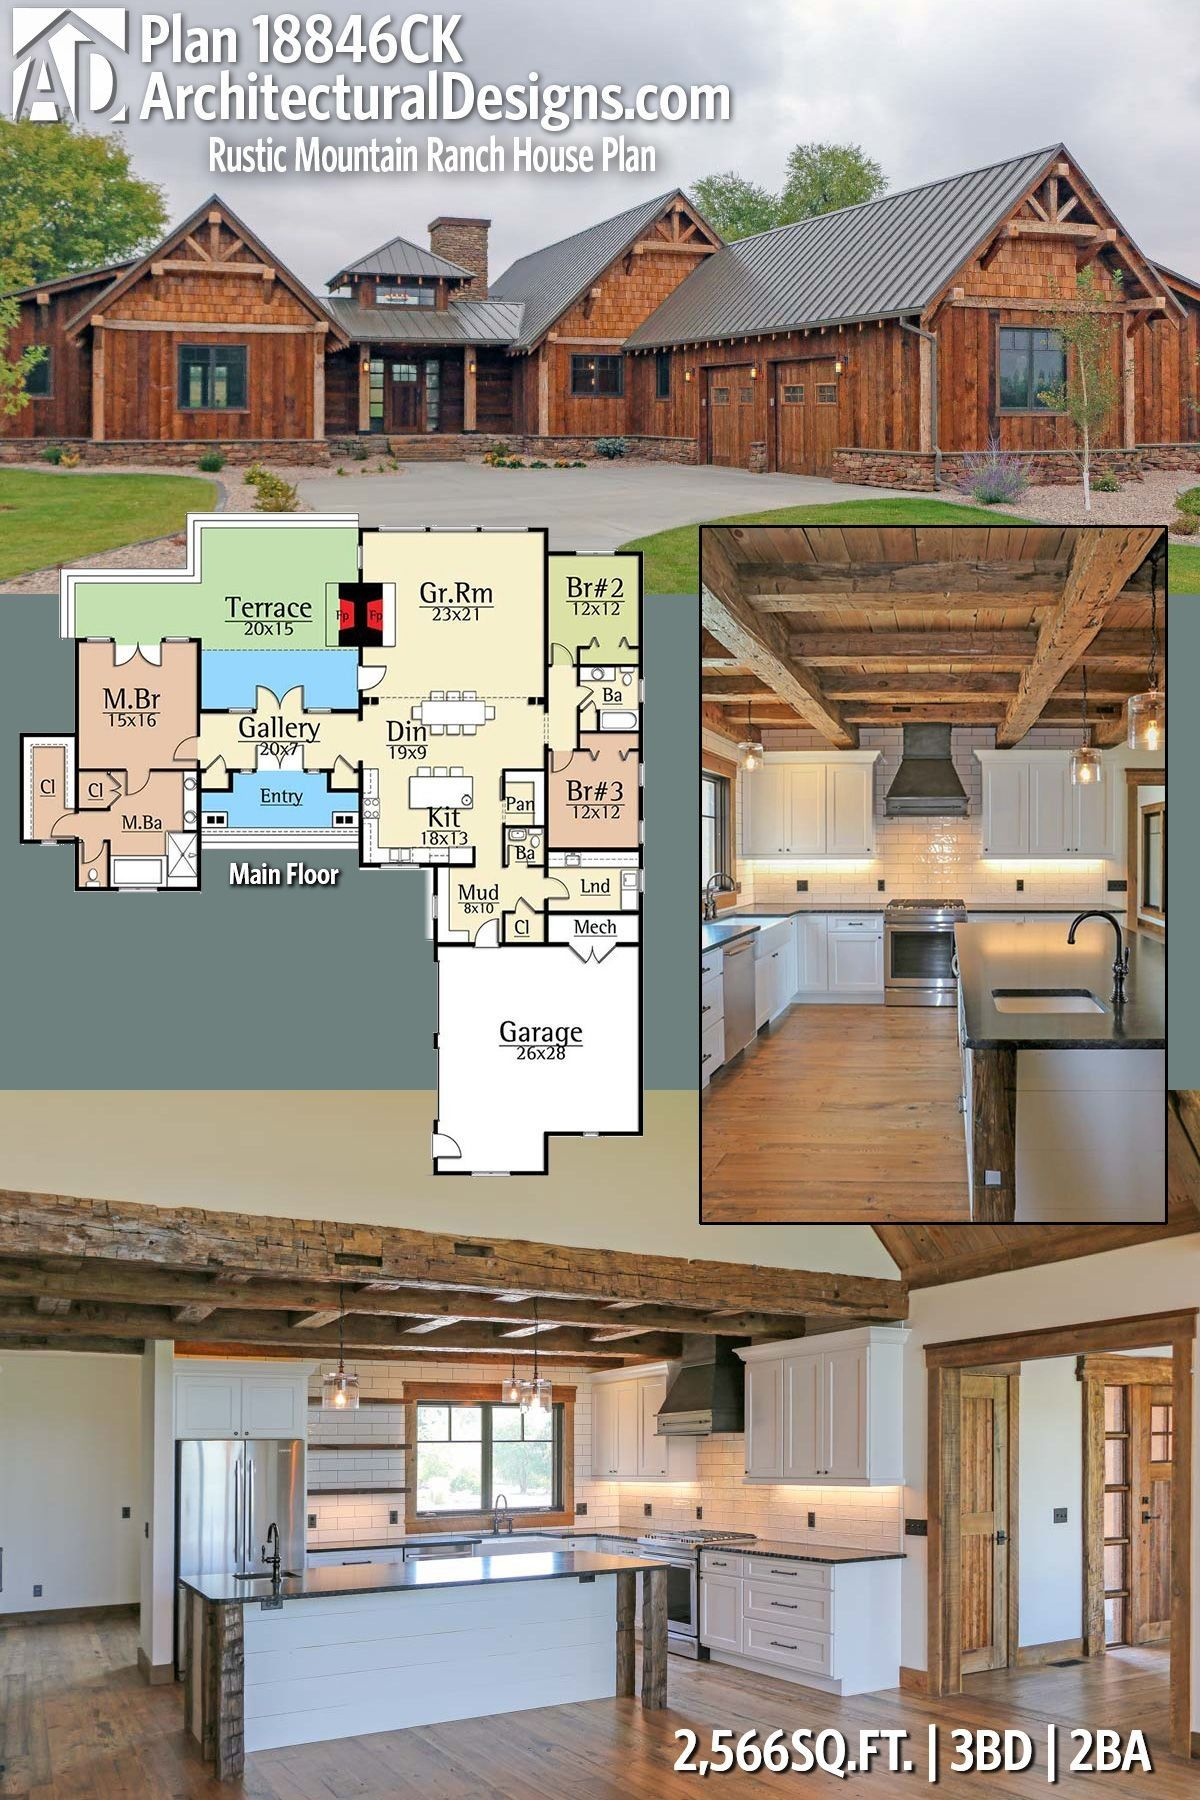 Beautiful Plan Ck Rustic Mountain Ranch House Plan Multigenerational House Plans With Two Kitch Mountain Ranch House Plans New House Plans Mountain House Plans